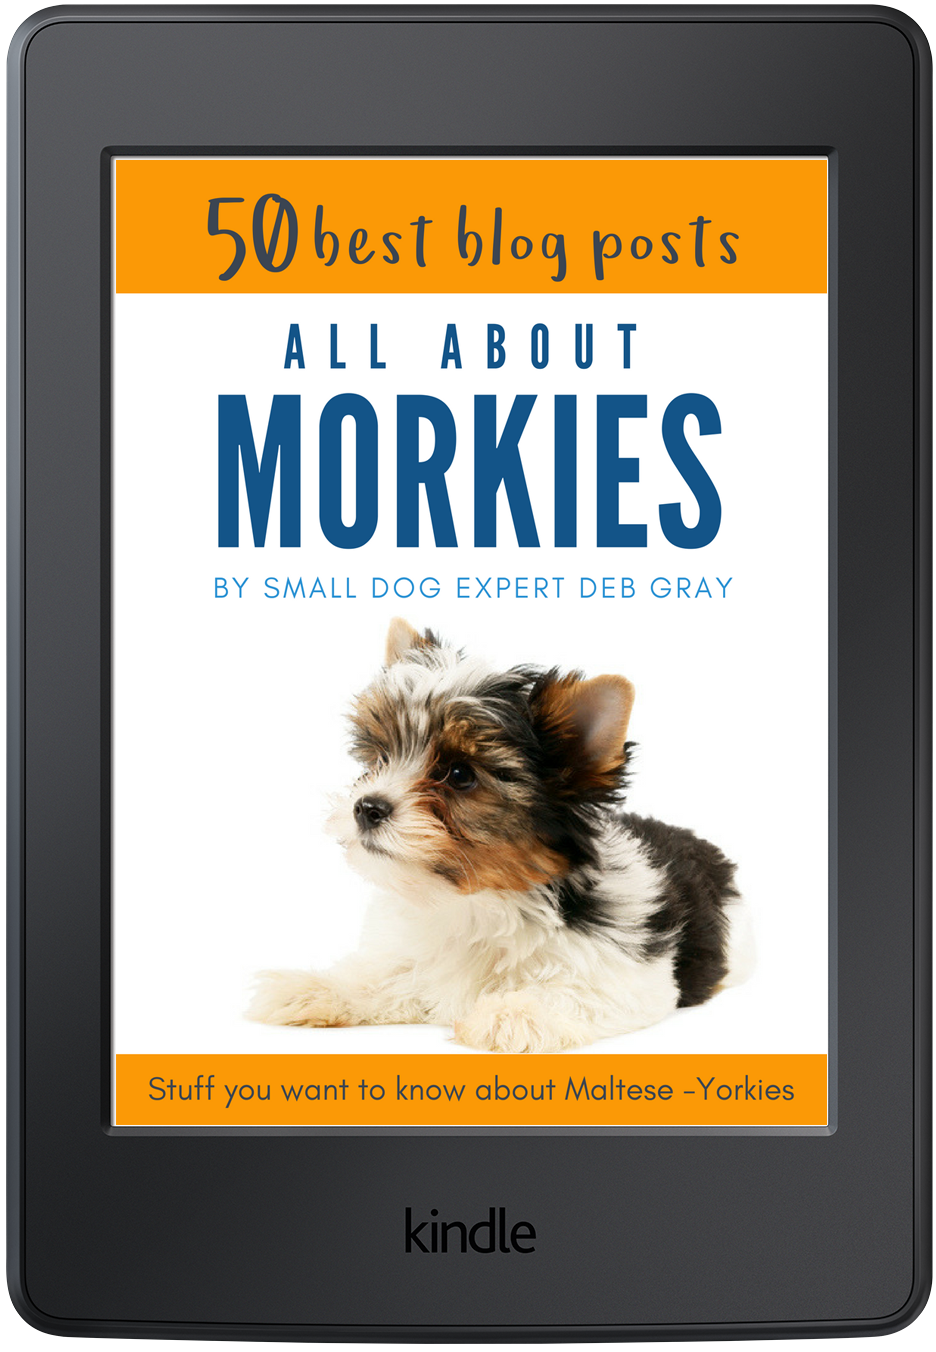 Dog care about morkies